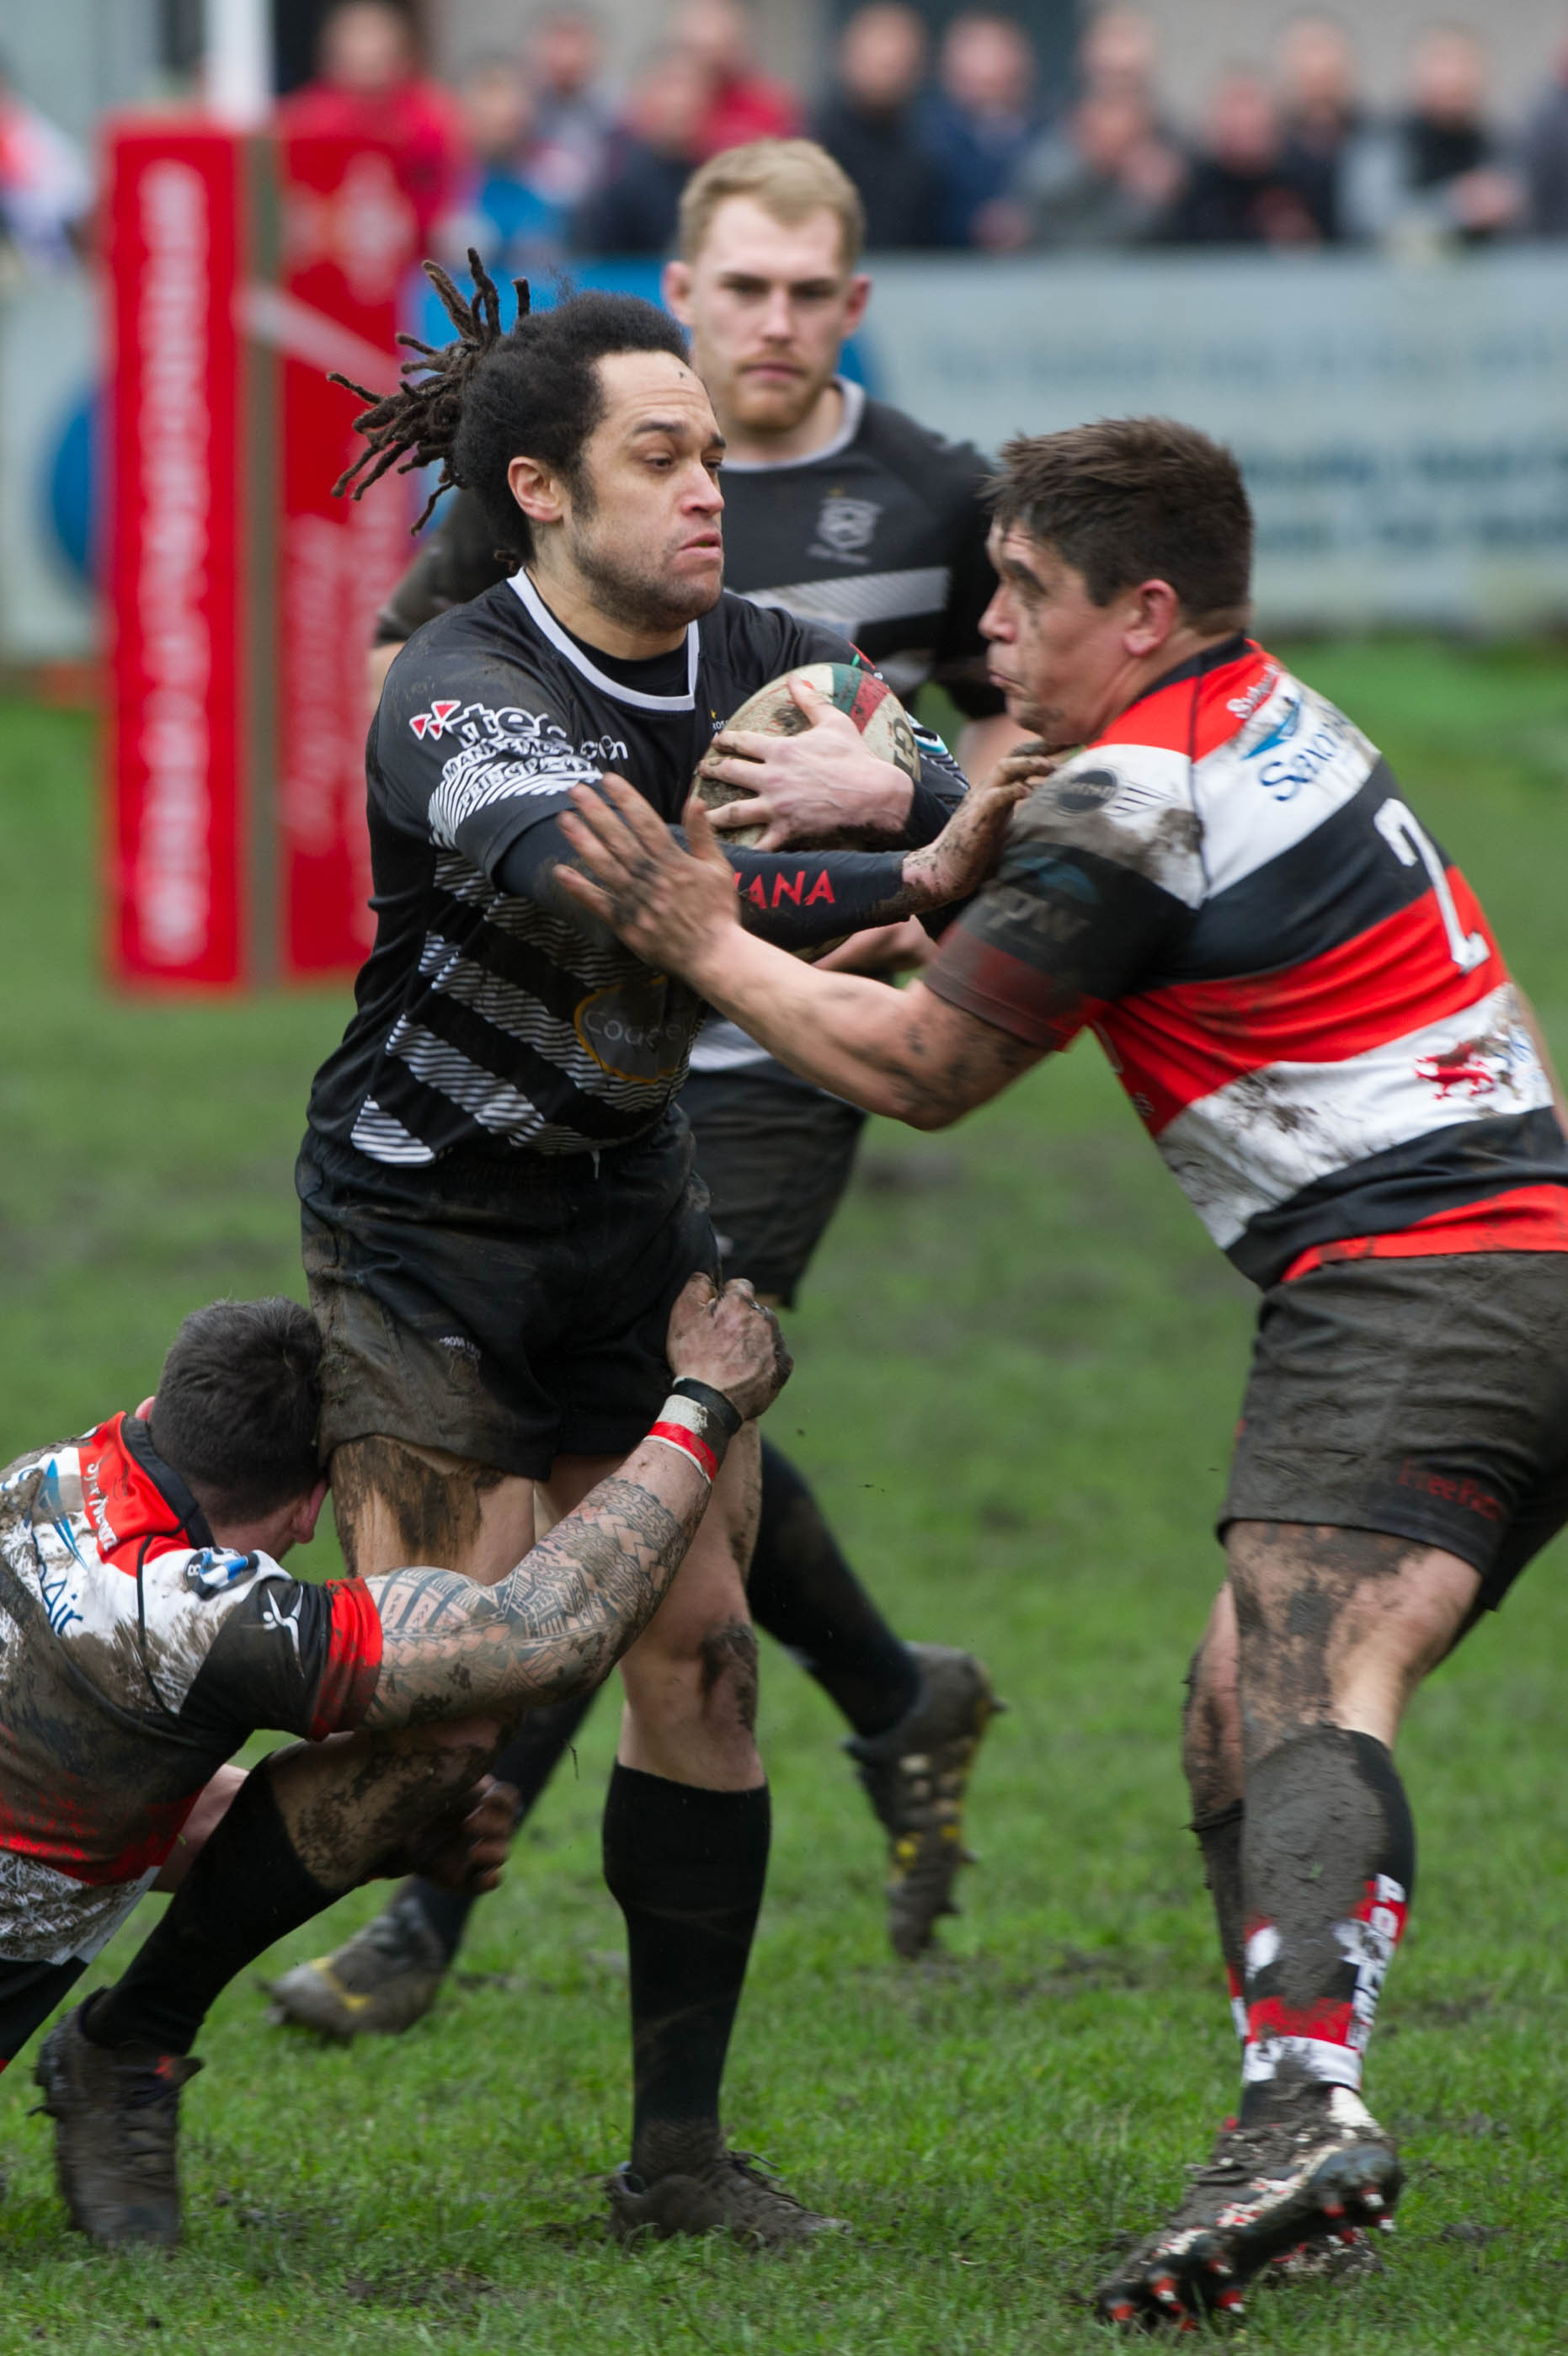 CUP CLASH: Leon Andrews is tackled by Ben Parry in the cup game between Cross Keys and Pontypool two years ago